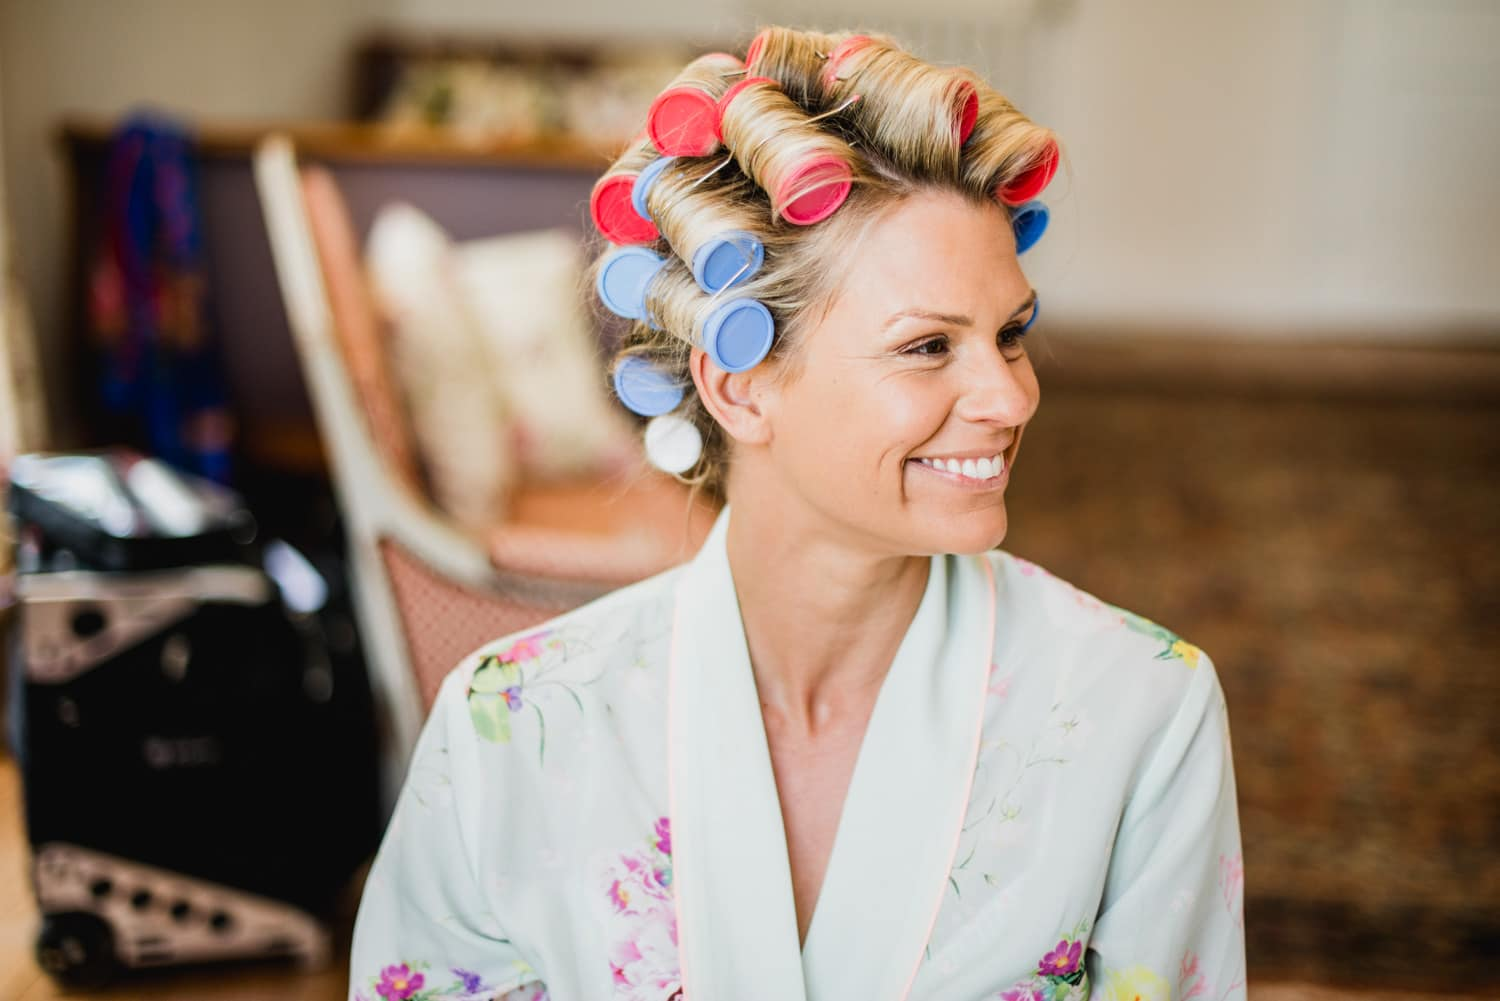 bride with curlers at Chateau de Lacoste wedding venue in France